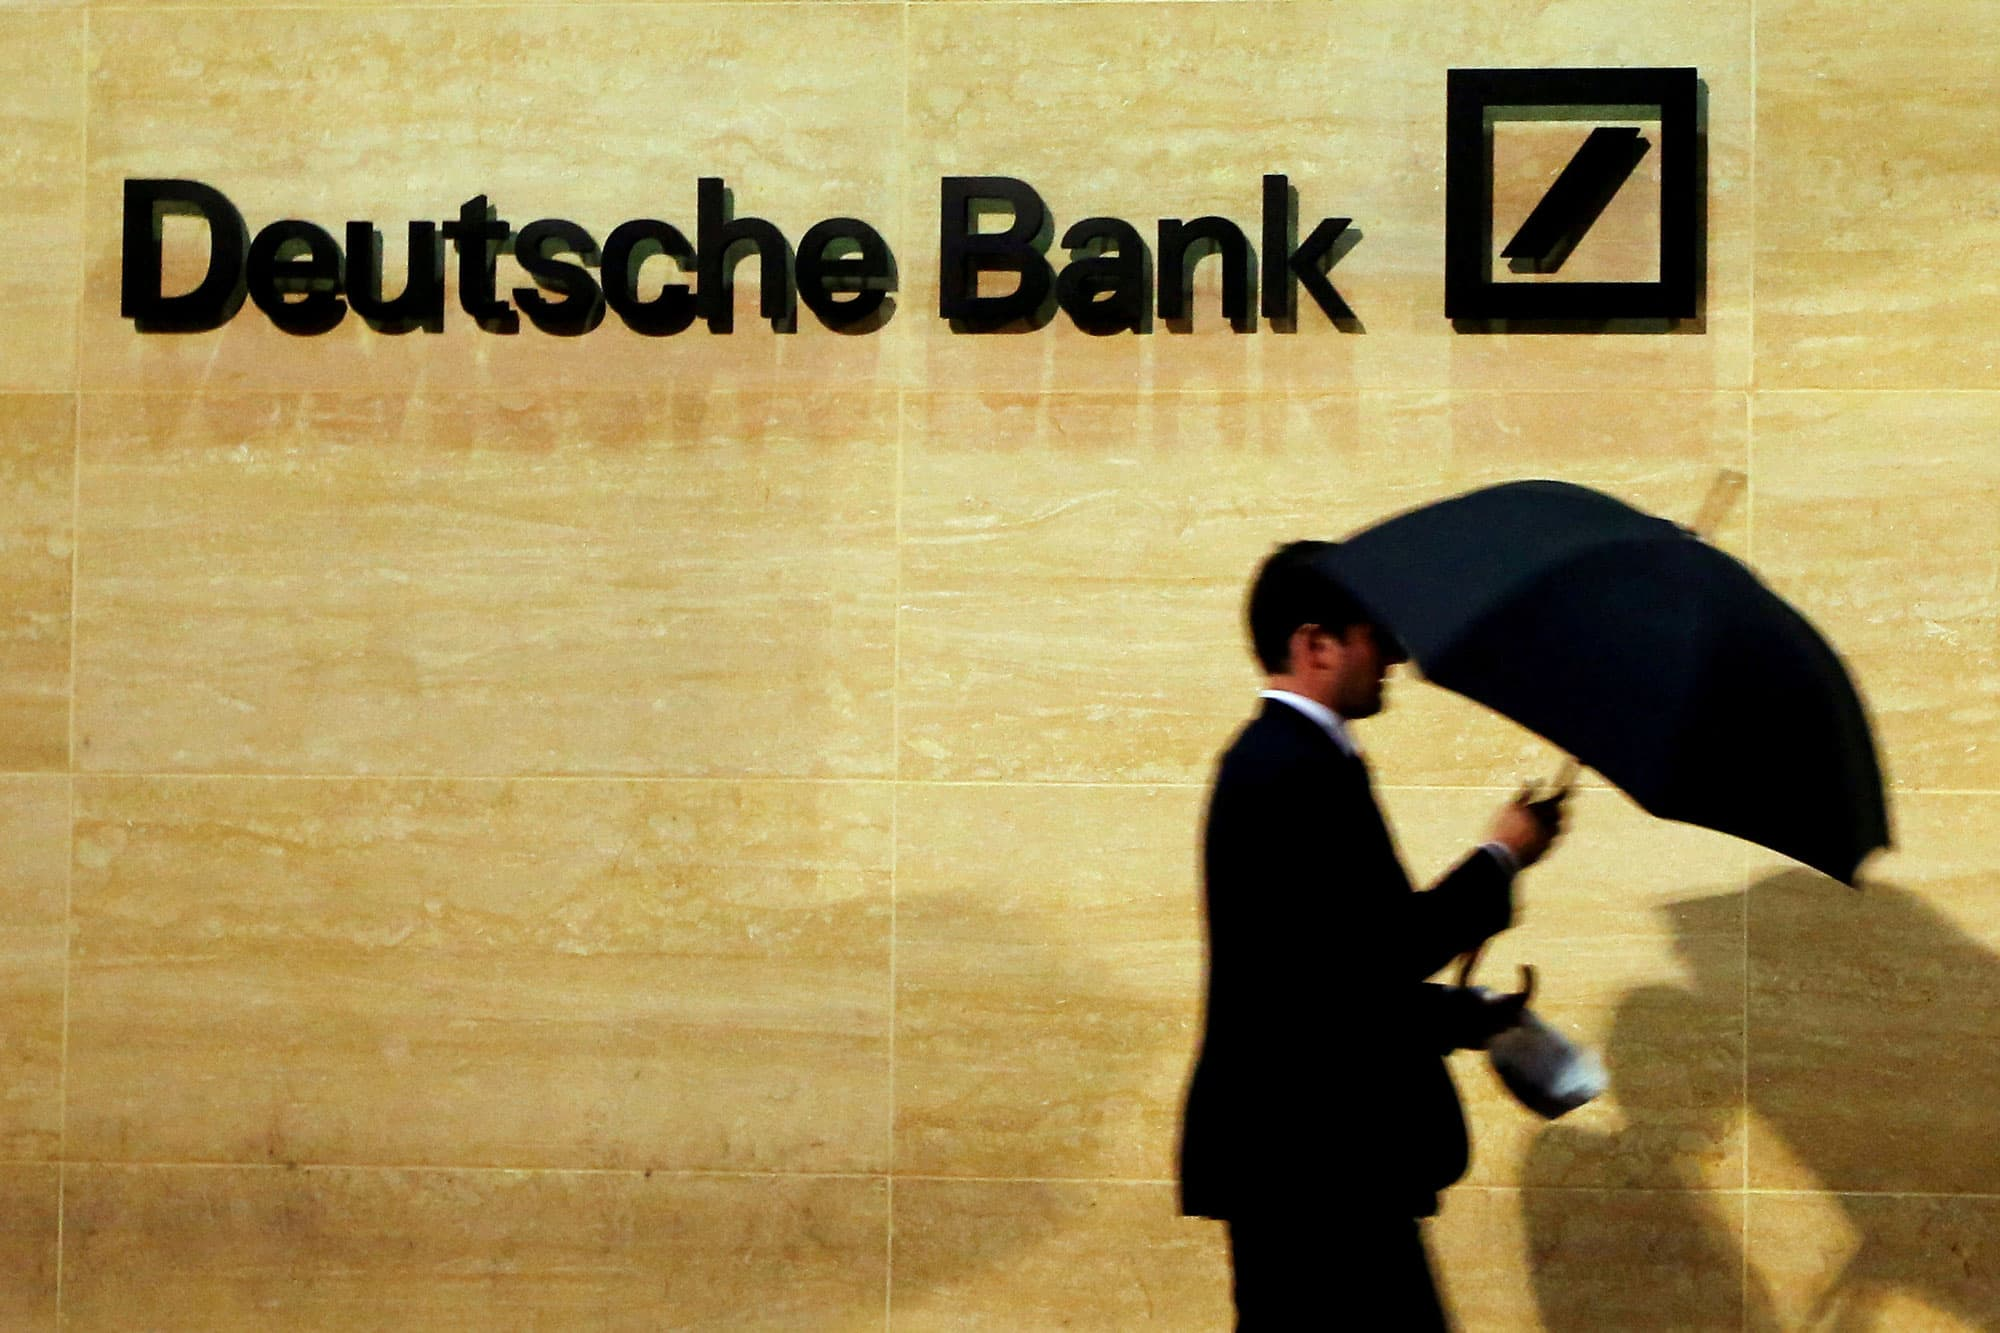 UBS, Deutsche Bank and HSBC to pay millions in spoofing settlement